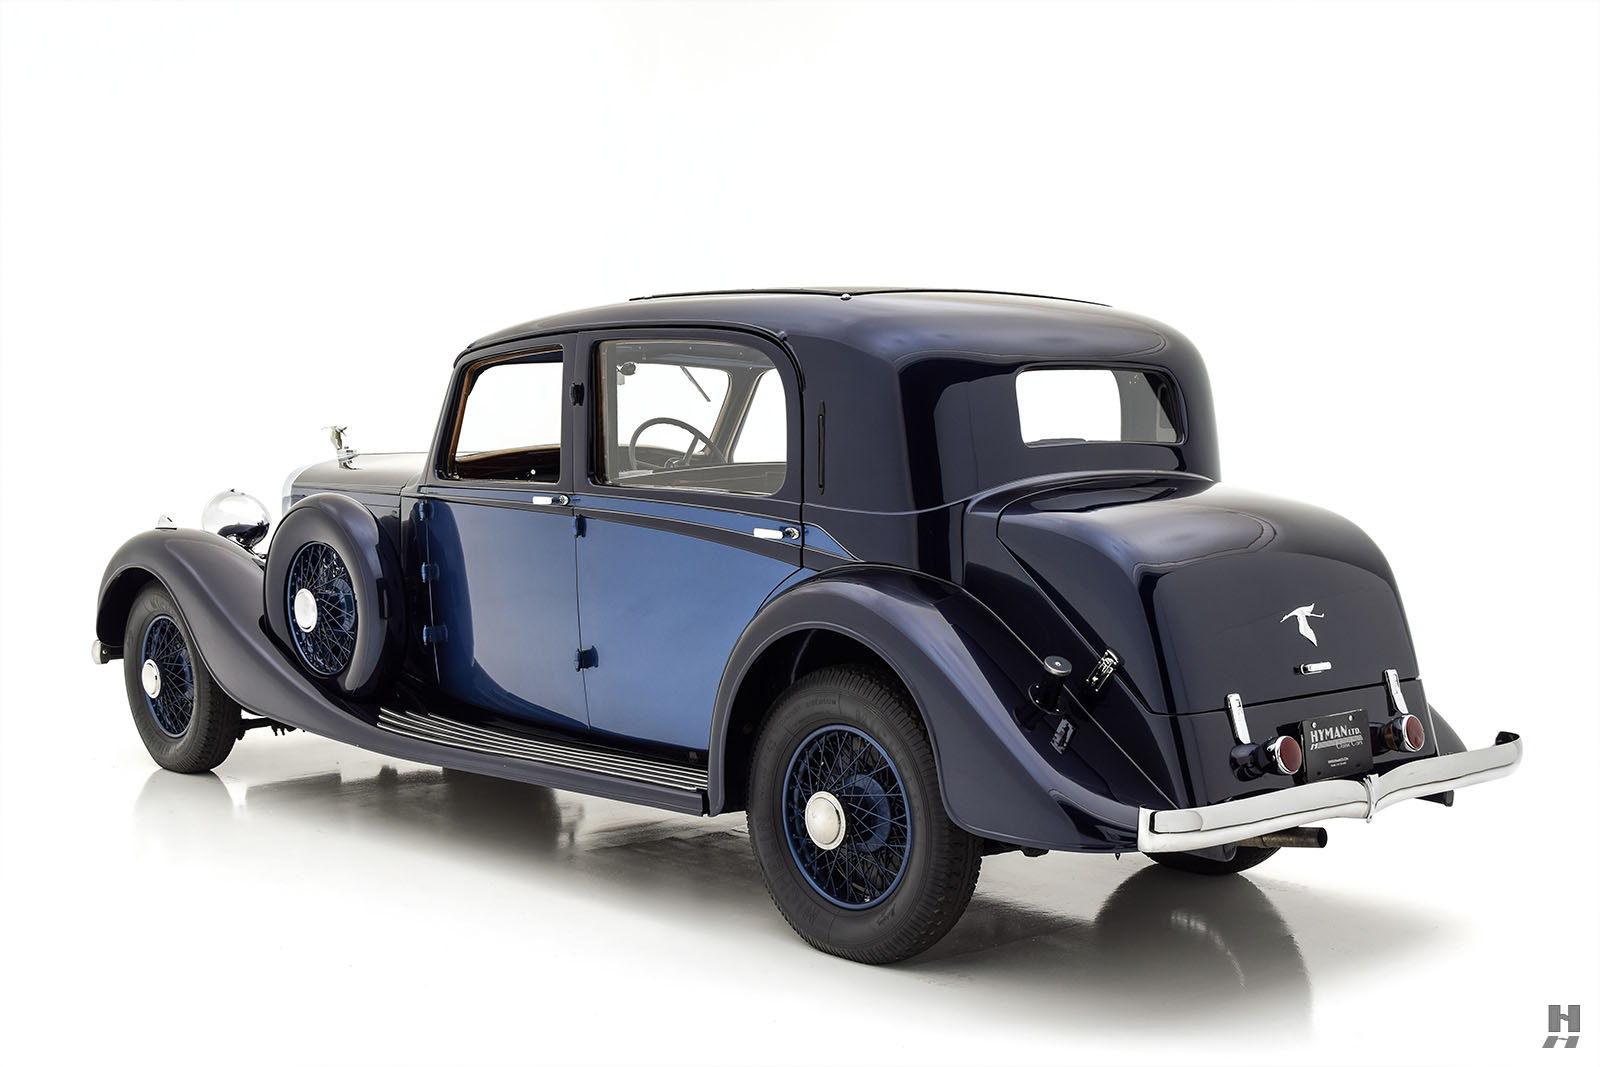 1936 HISPANO-SUIZA K6 BERLINE For Sale (picture 6 of 6)